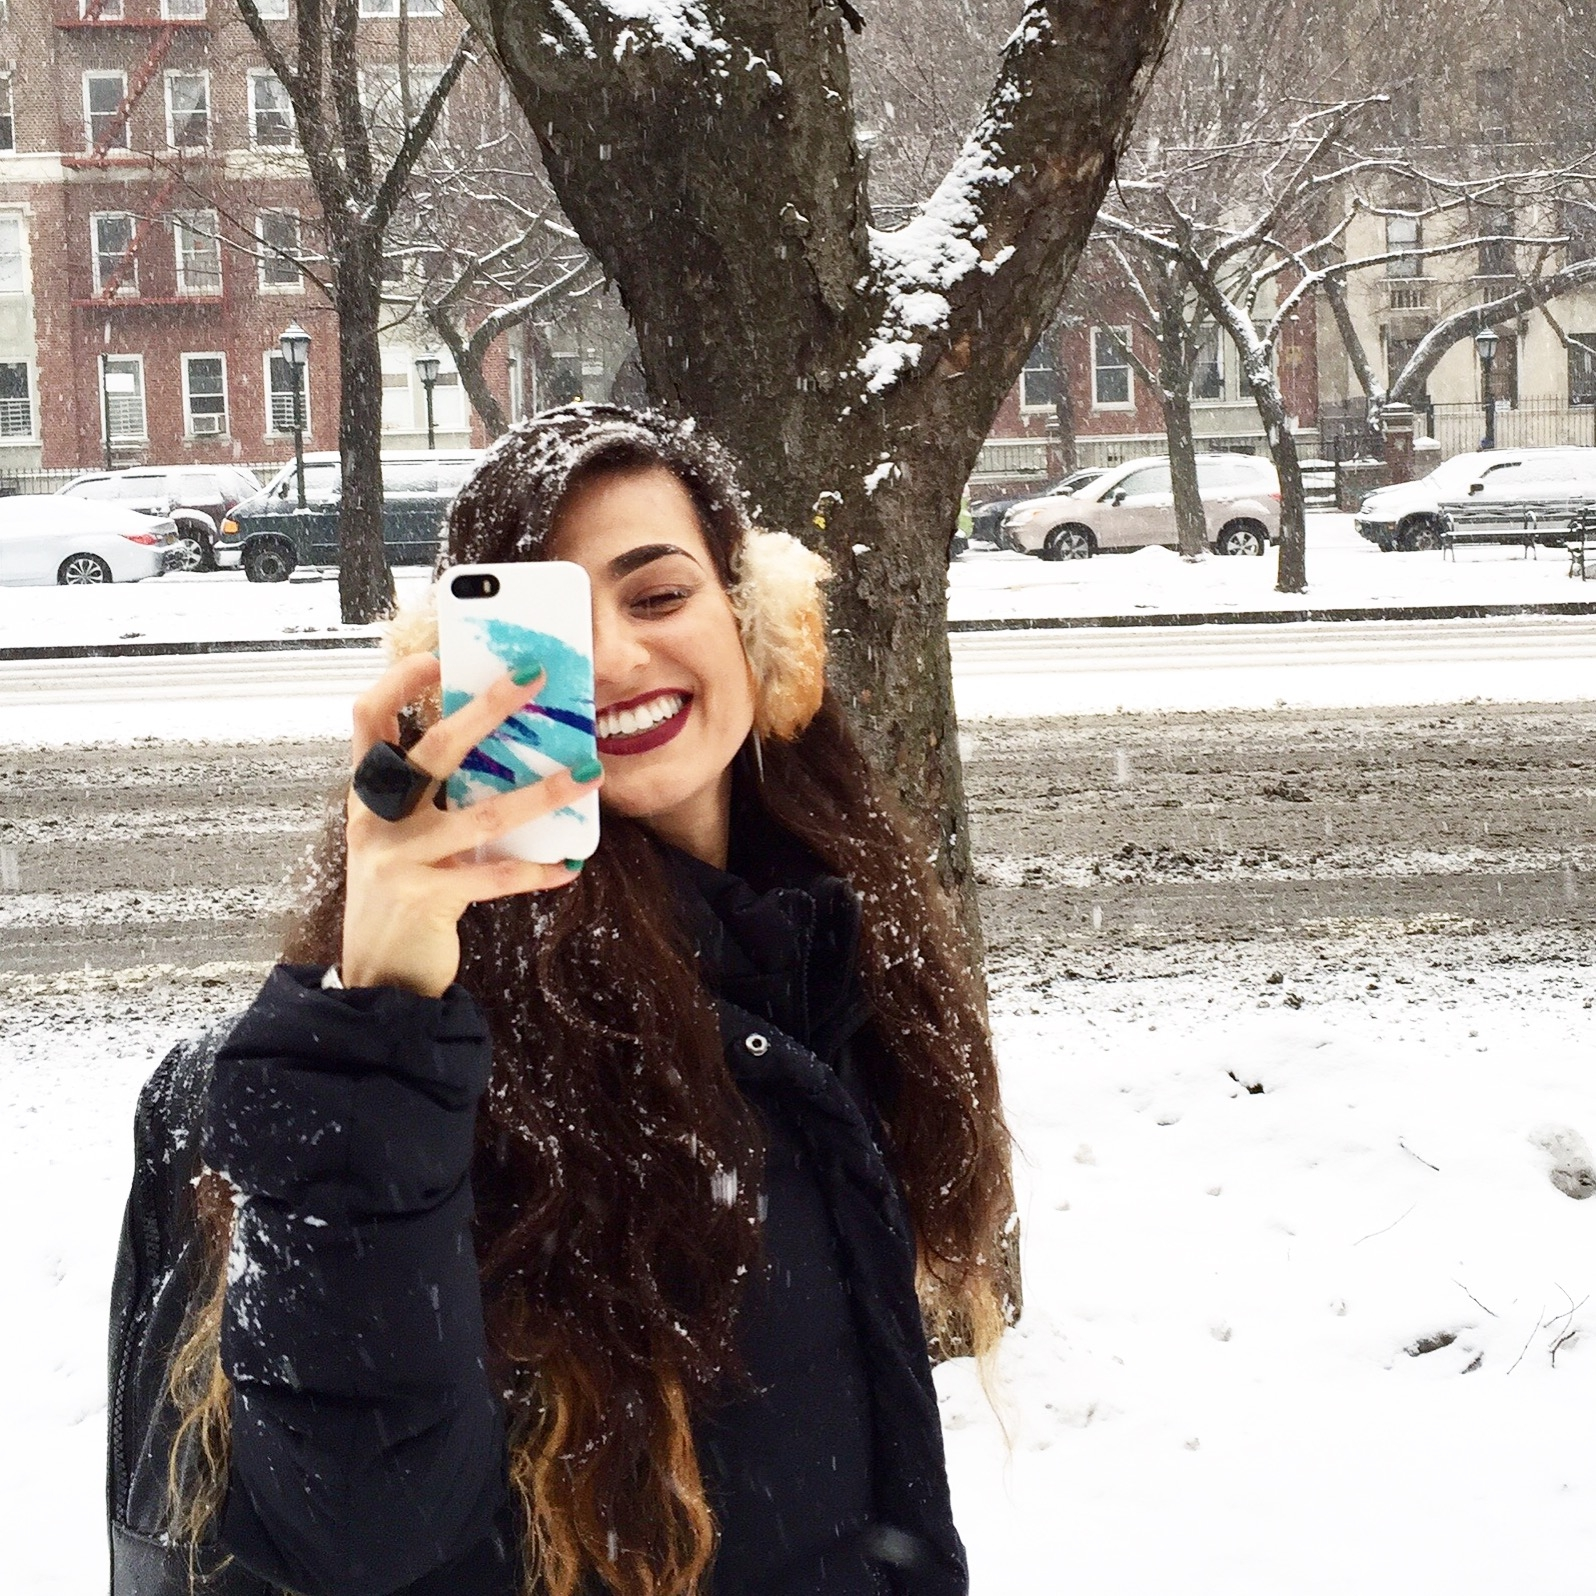 Dana Suchow Do The Hotpants Winter Snow NYC Storm Fashion OOTD Cold Weather Outfit Ideas